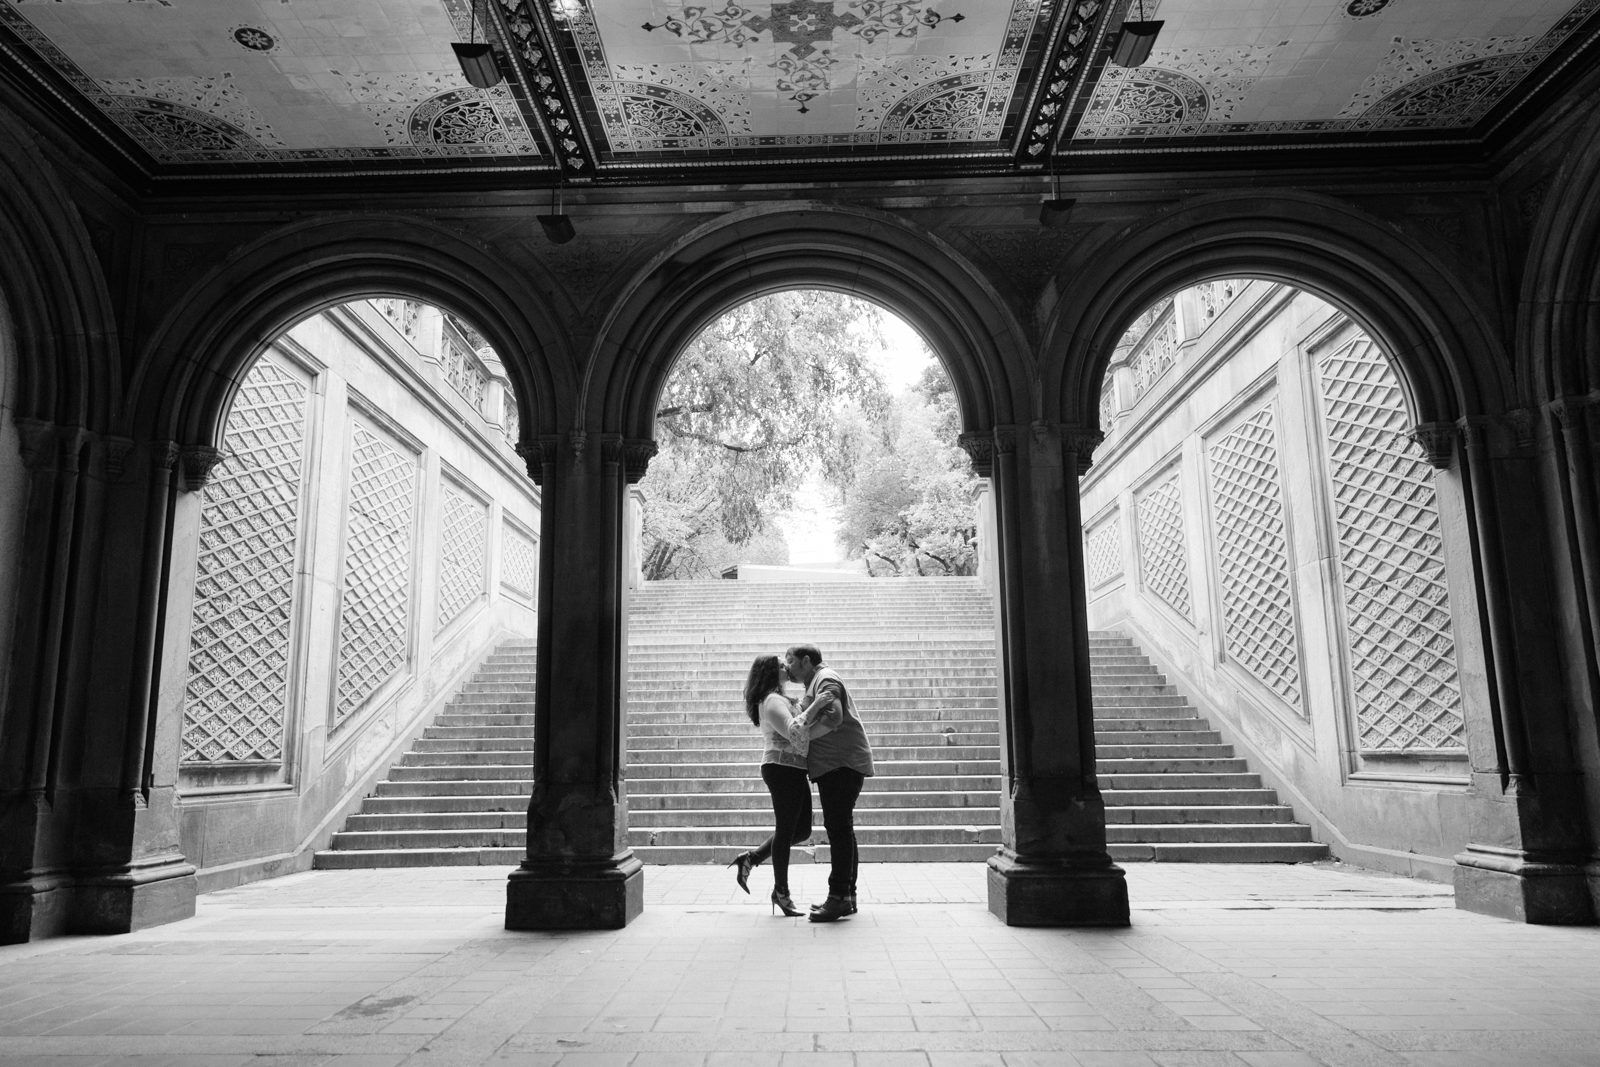 Central-Park-NYC-Engagement-Session-film-photography-63.jpg